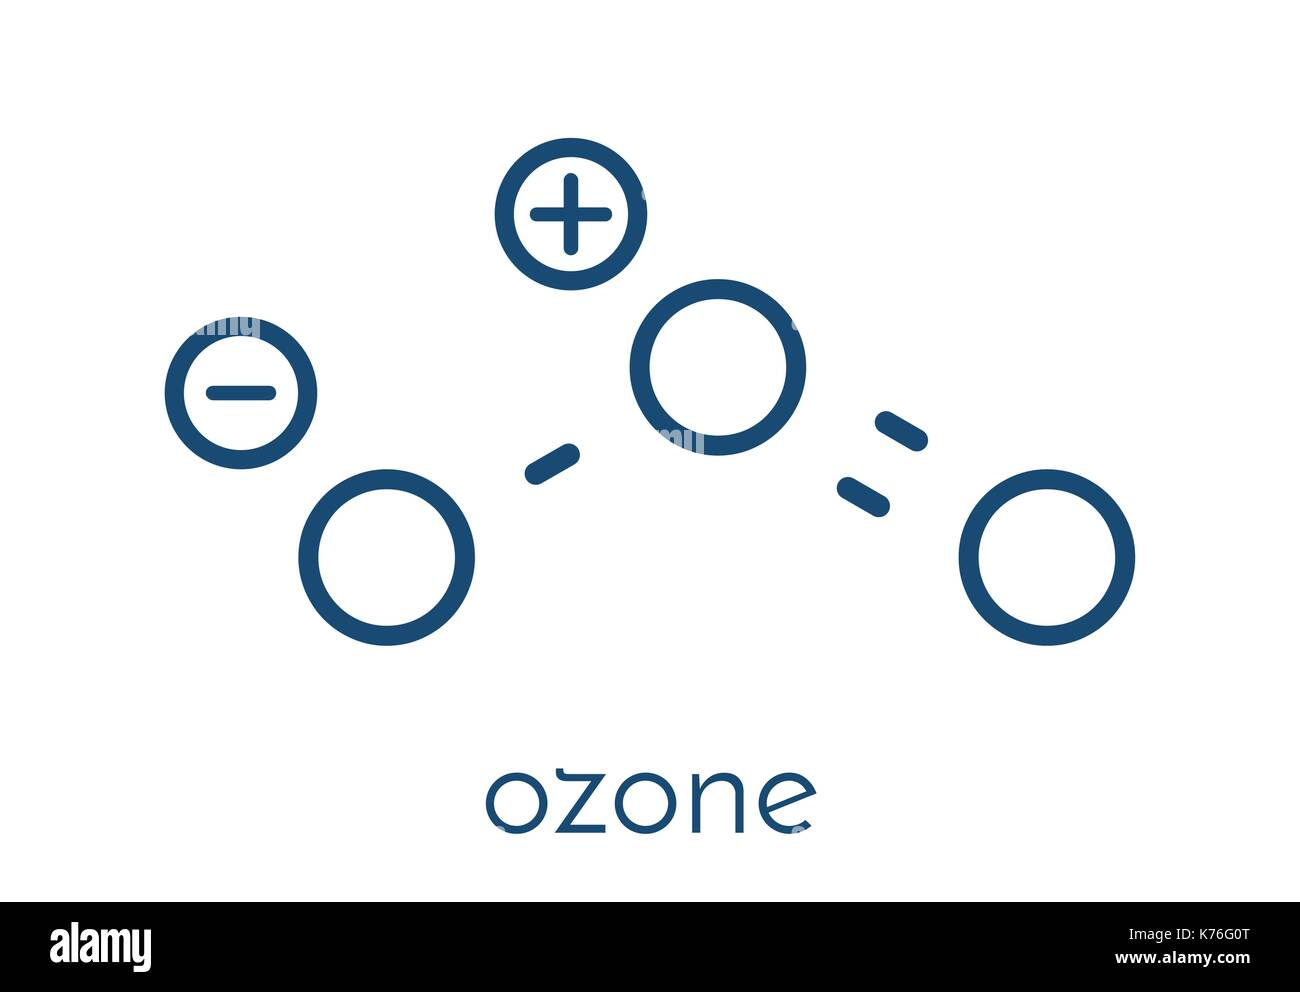 Chemical formula air stock photos chemical formula air stock ozone trioxygen o3 molecule chemical structure skeletal formula stock buycottarizona Image collections